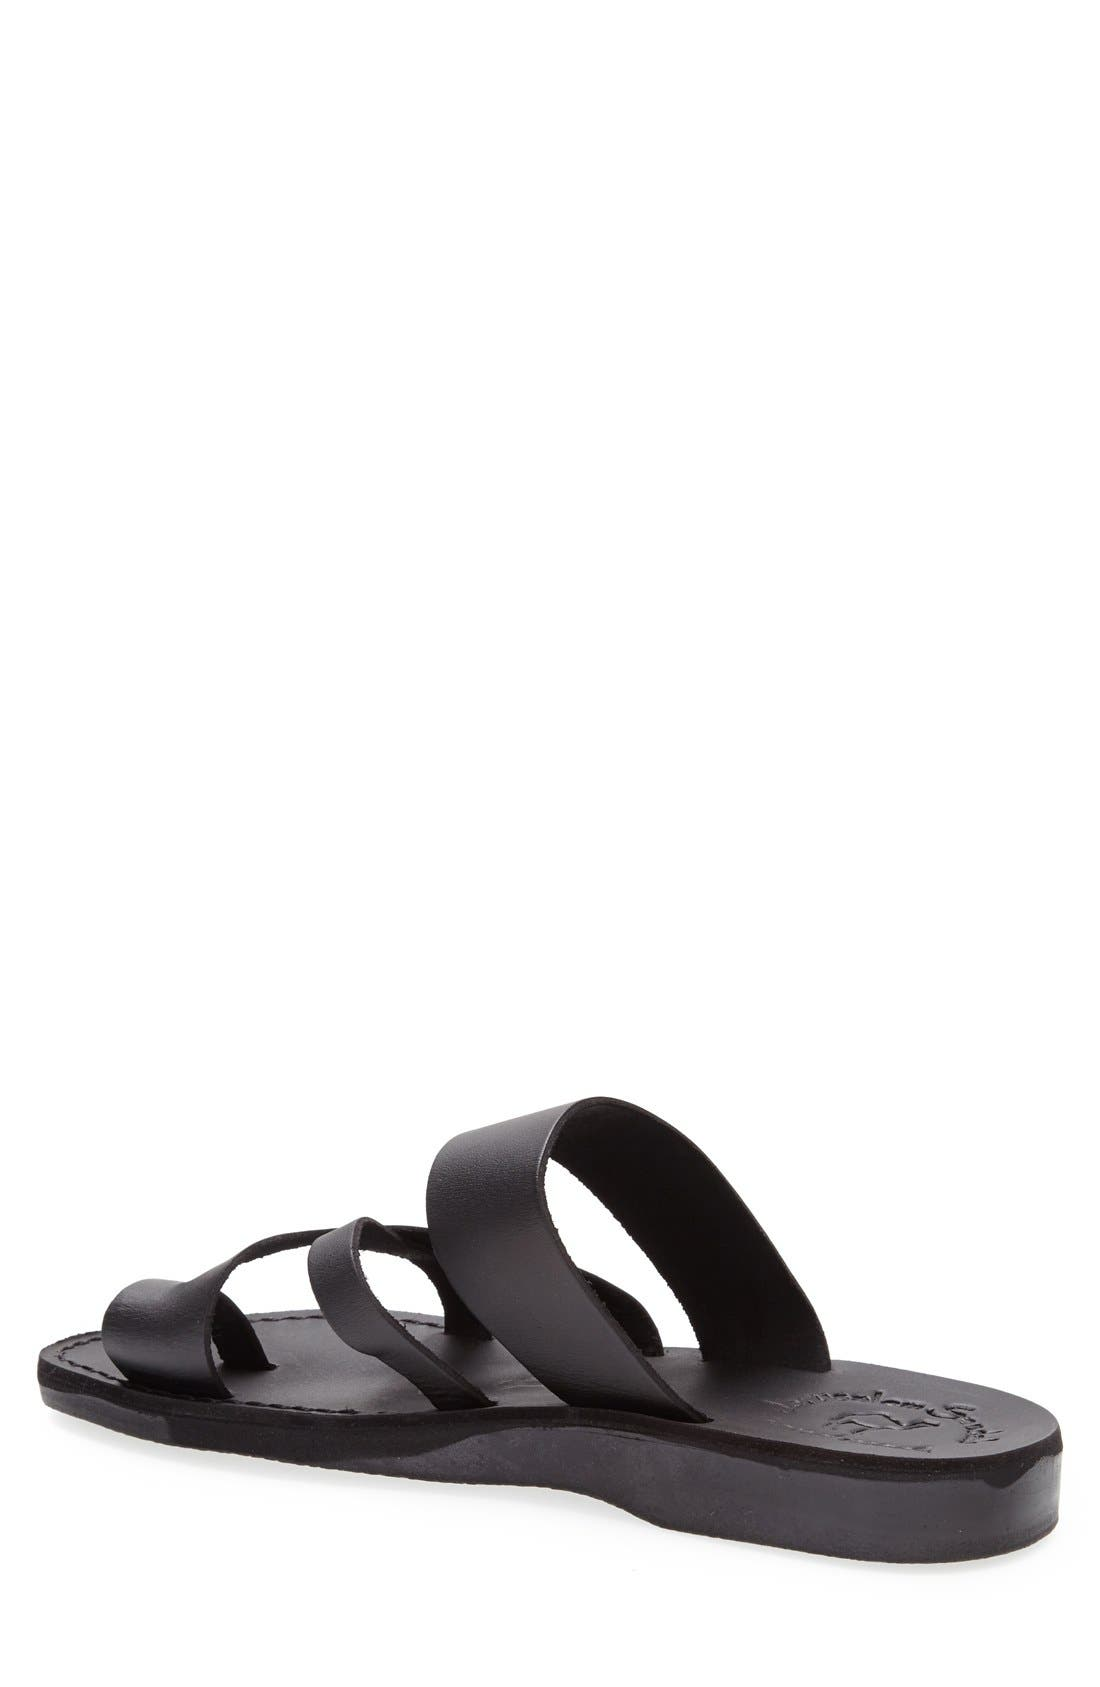 'The Good Shepherd' Leather Sandal,                             Alternate thumbnail 2, color,                             001